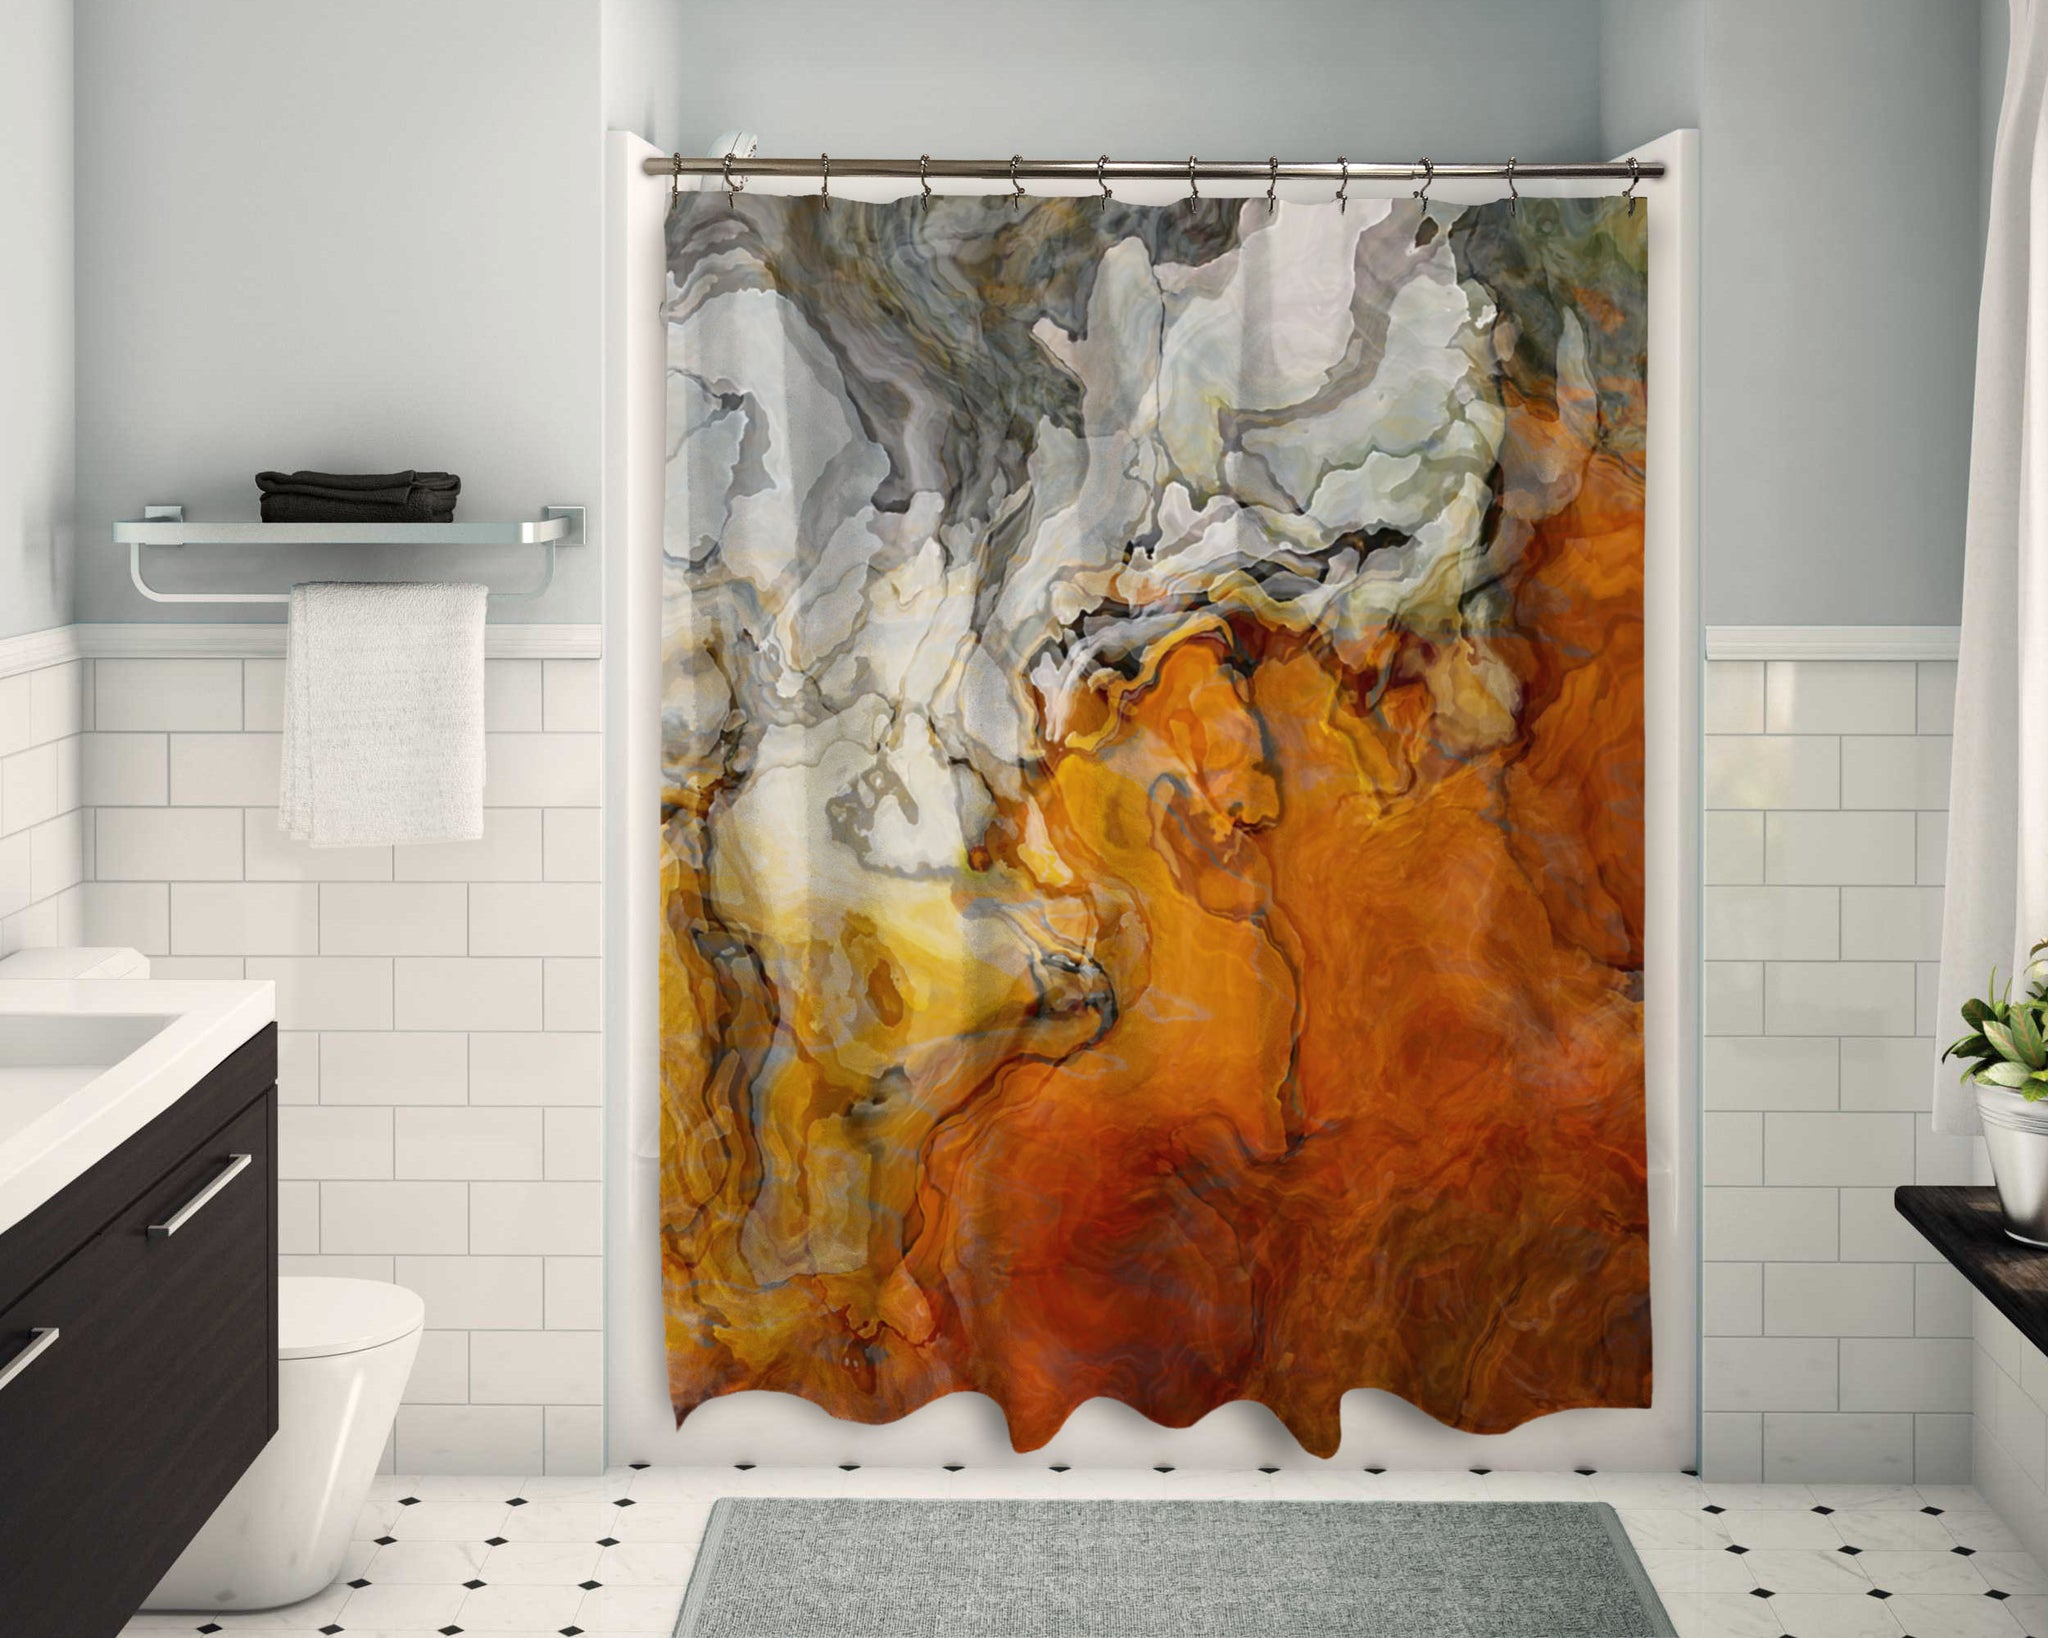 Abstract Shower Curtain Orange White And Gray Contemporary Bathroom Abstract Art Home